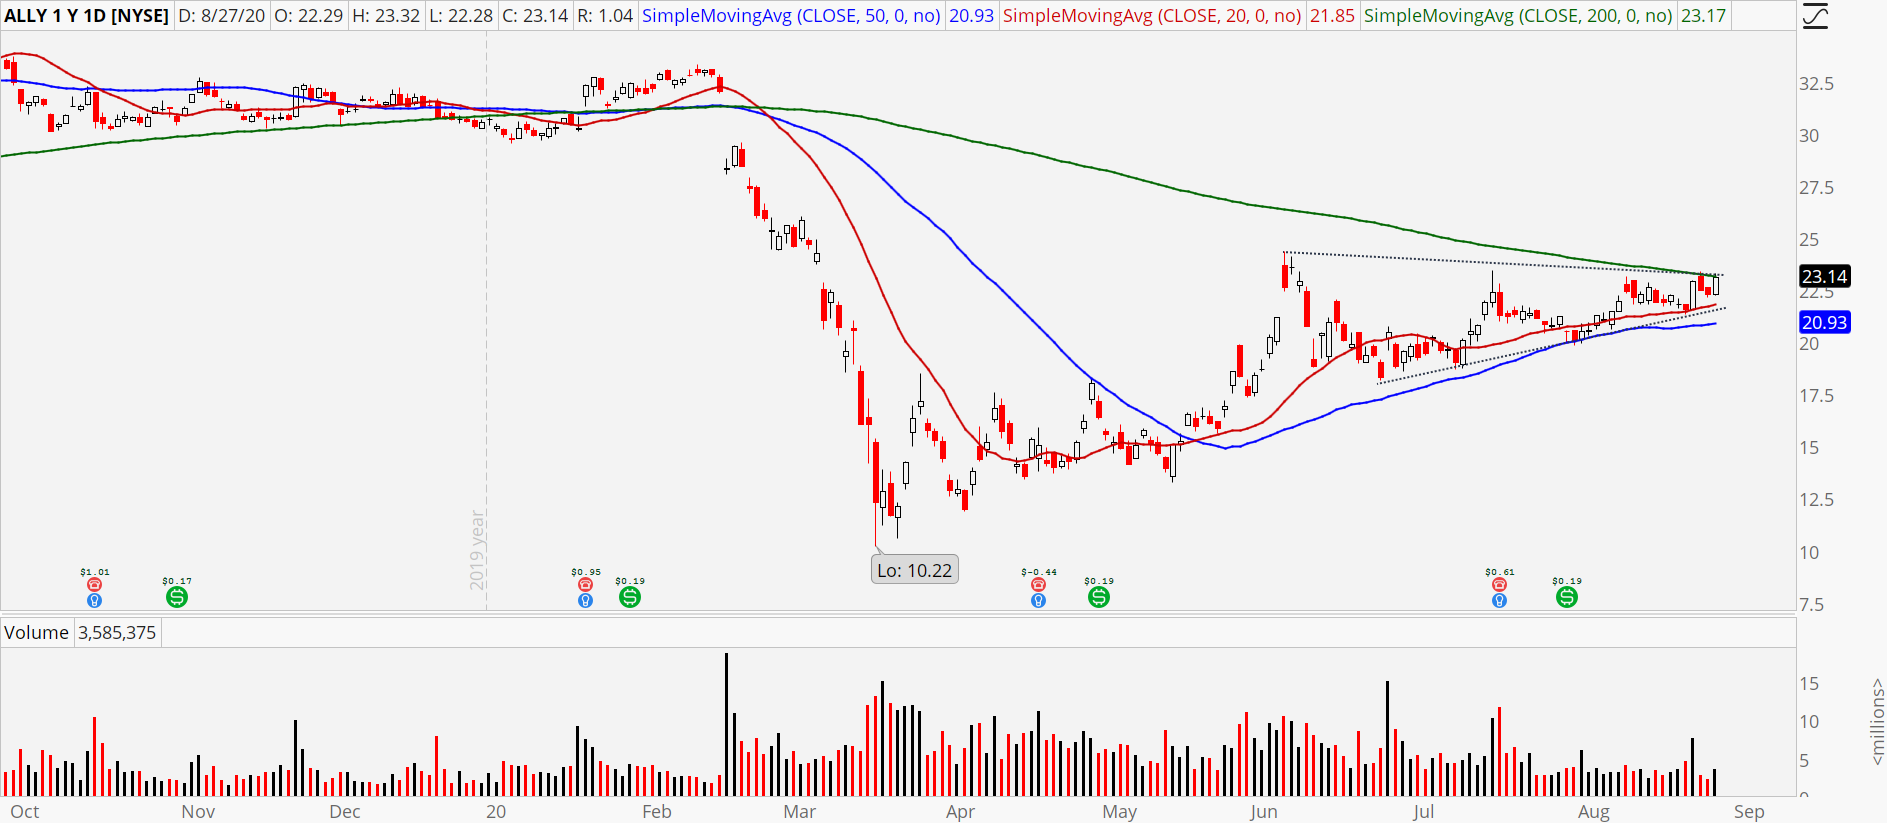 Ally Financial (ALLY) stock chart showing imminent breakout